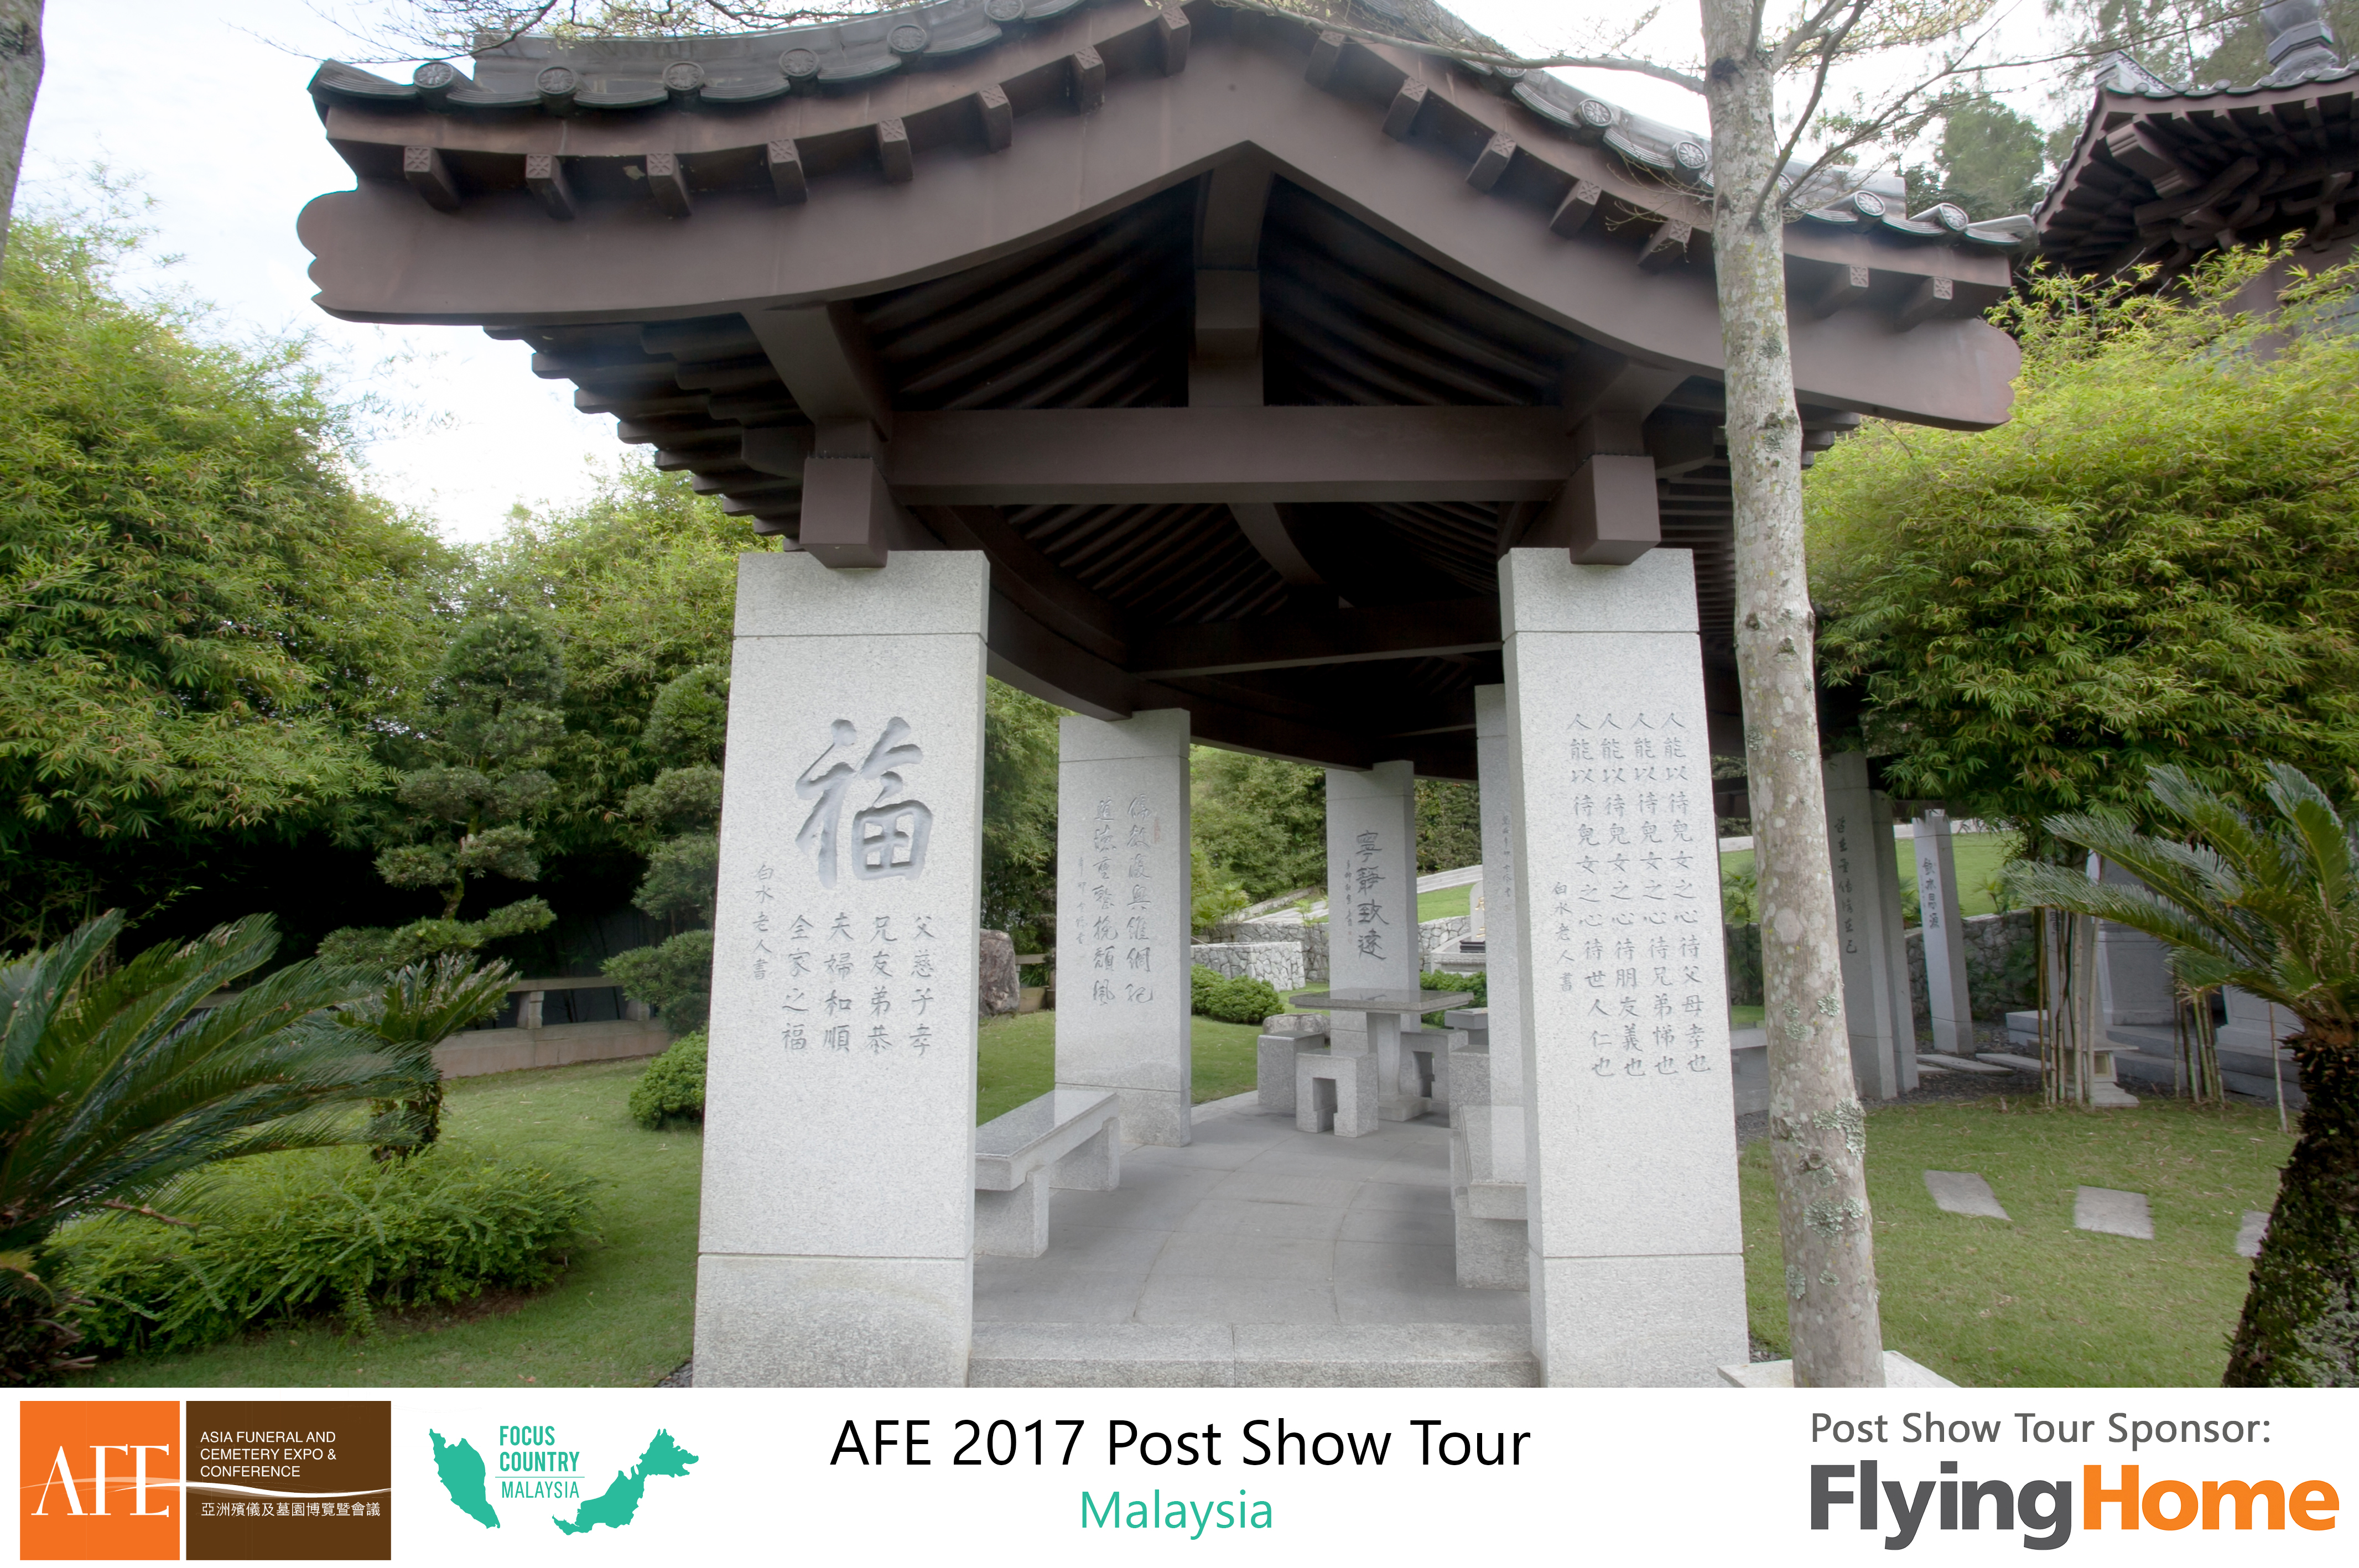 AFE Post Show Tour 2017 Day 2 - 66